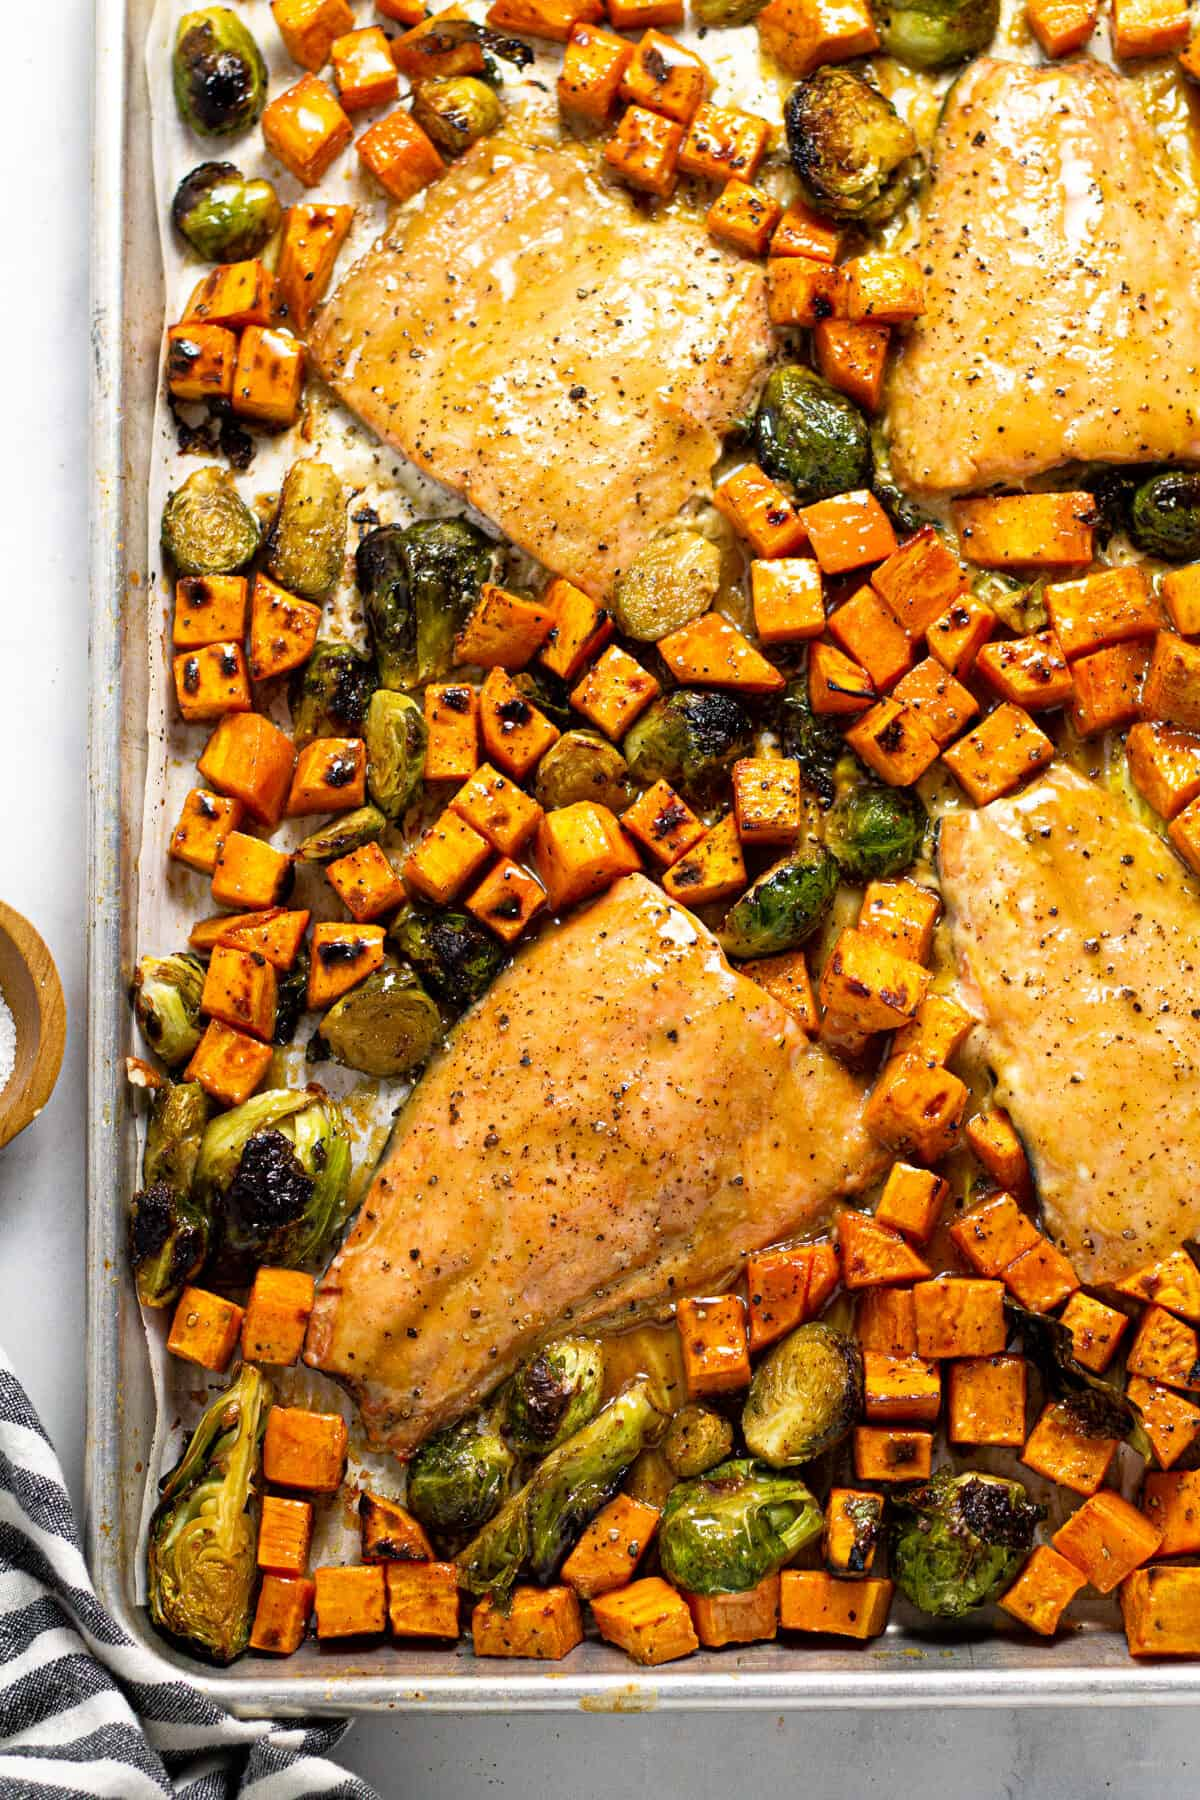 Overhead shot of a sheet pan filled with maple mustard salmon and veggies